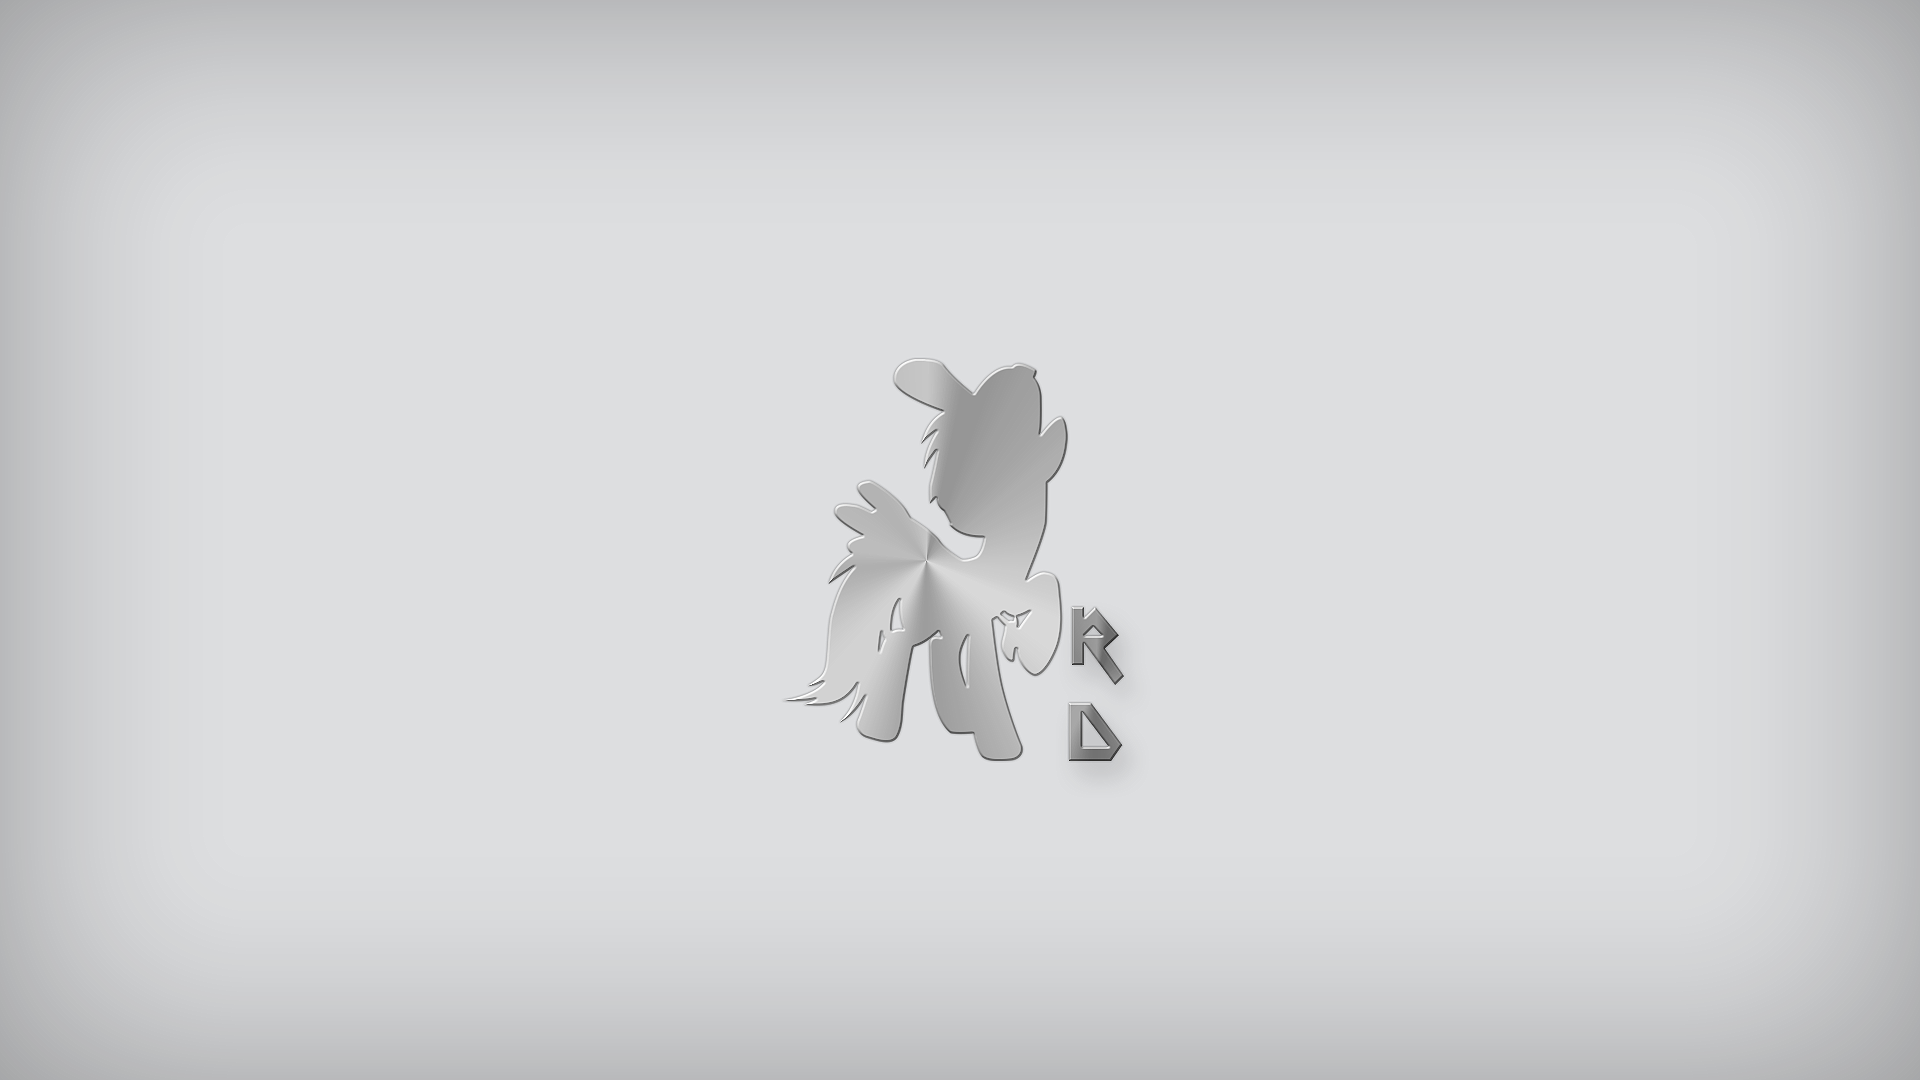 Rainbow Dash - Brushed Metal Type 2 by EphemeralBlue and Somepony